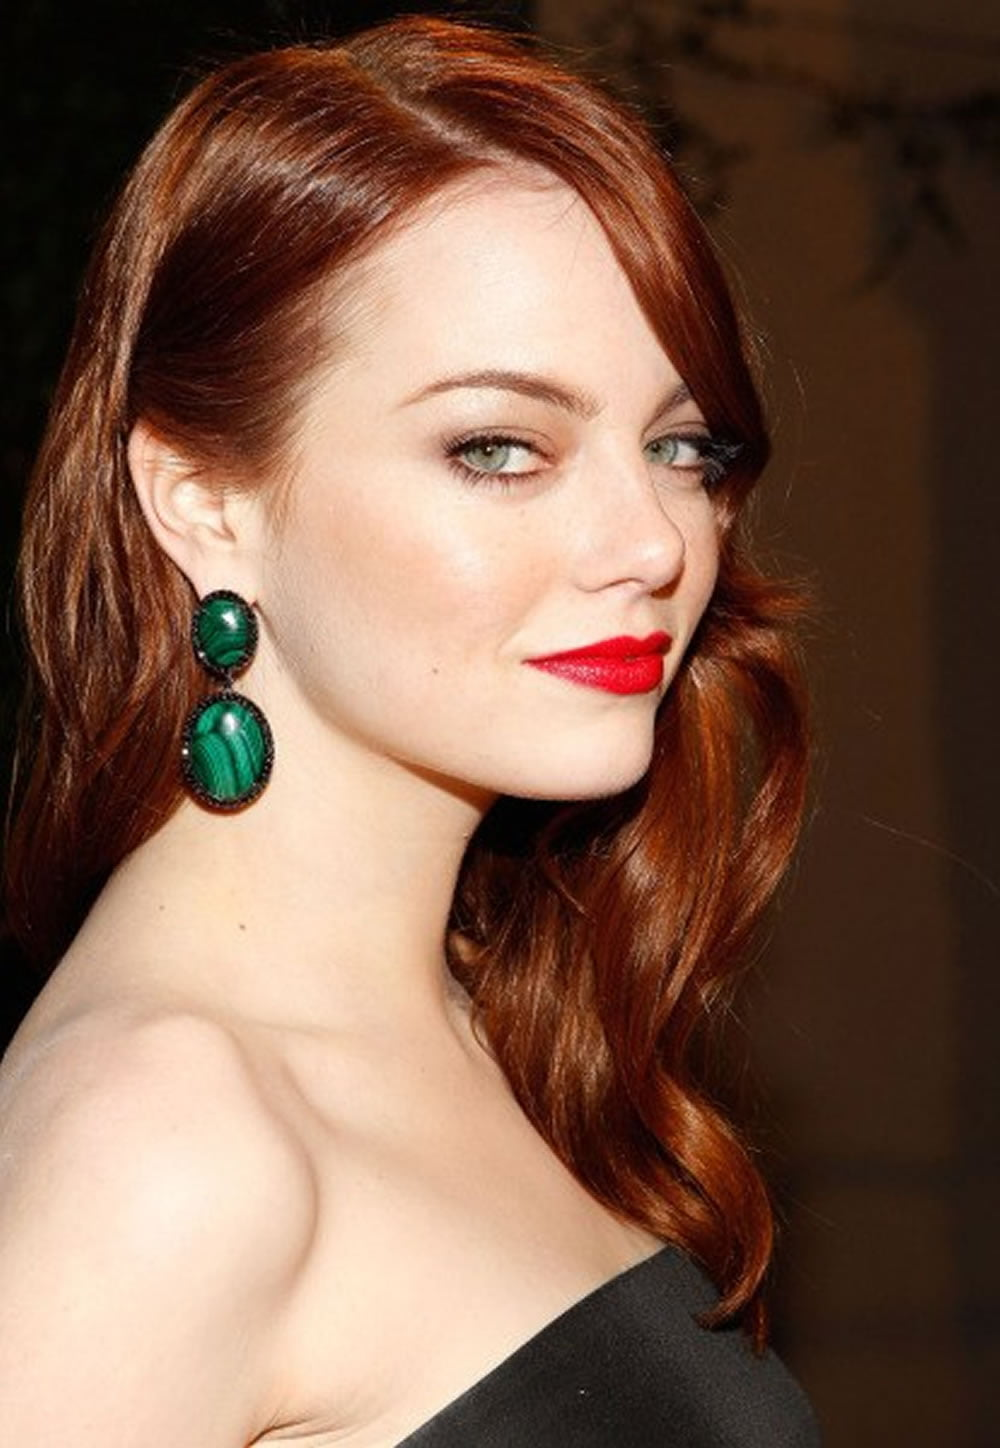 Medium Length Haircut Images And Hair Color Ideas For